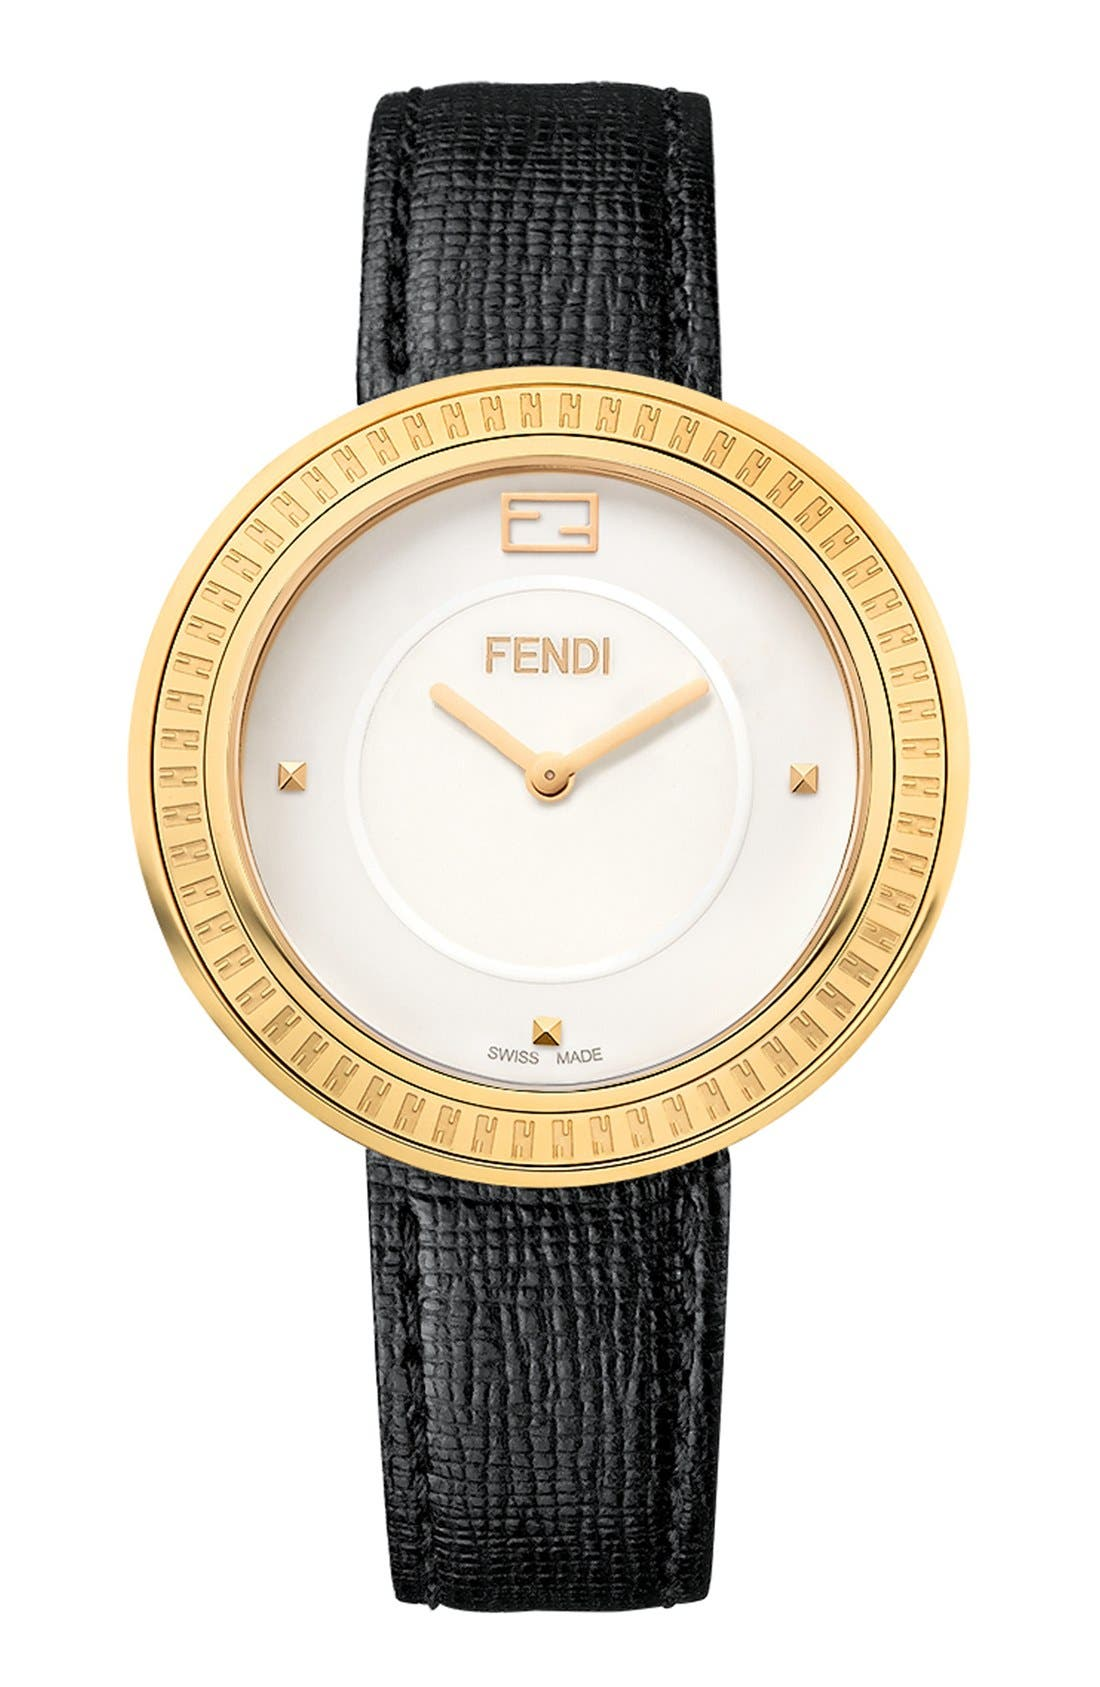 Main Image - Fendi 'Fendi My Way' Genuine Fox Fur Detail Leather Strap Watch, 36mm